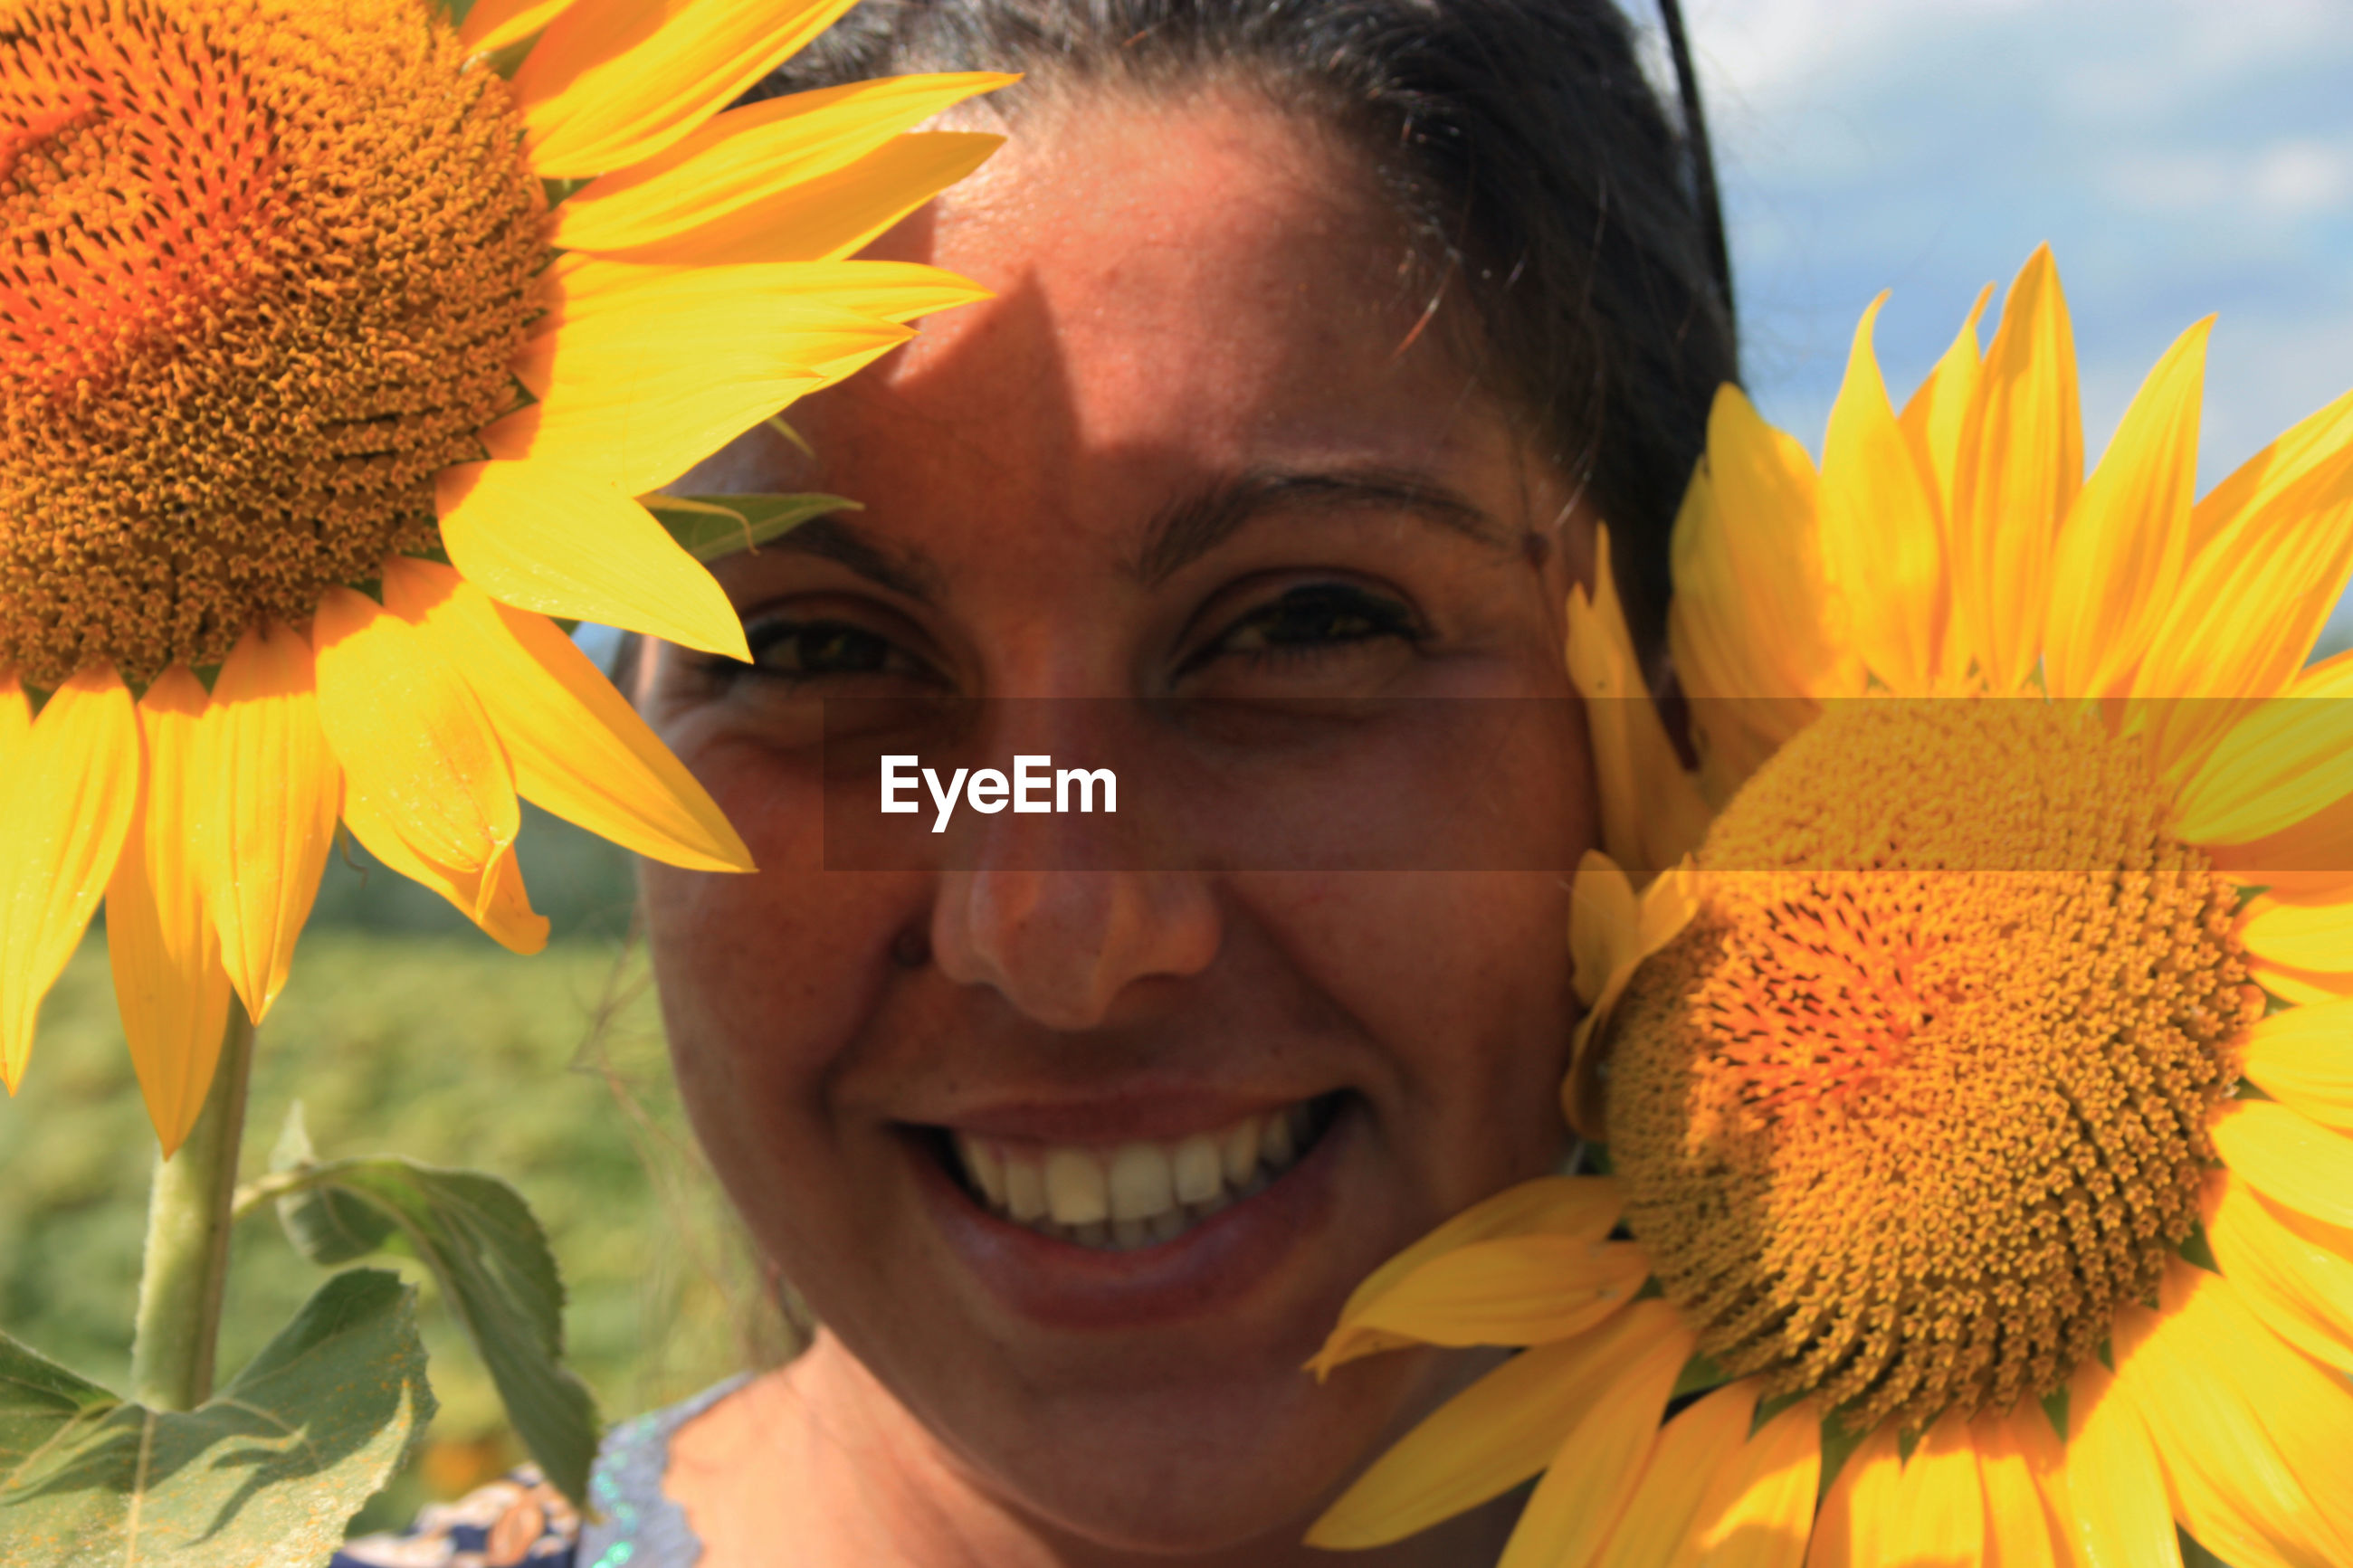 CLOSE-UP PORTRAIT OF A SMILING YOUNG WOMAN WITH SUNFLOWER